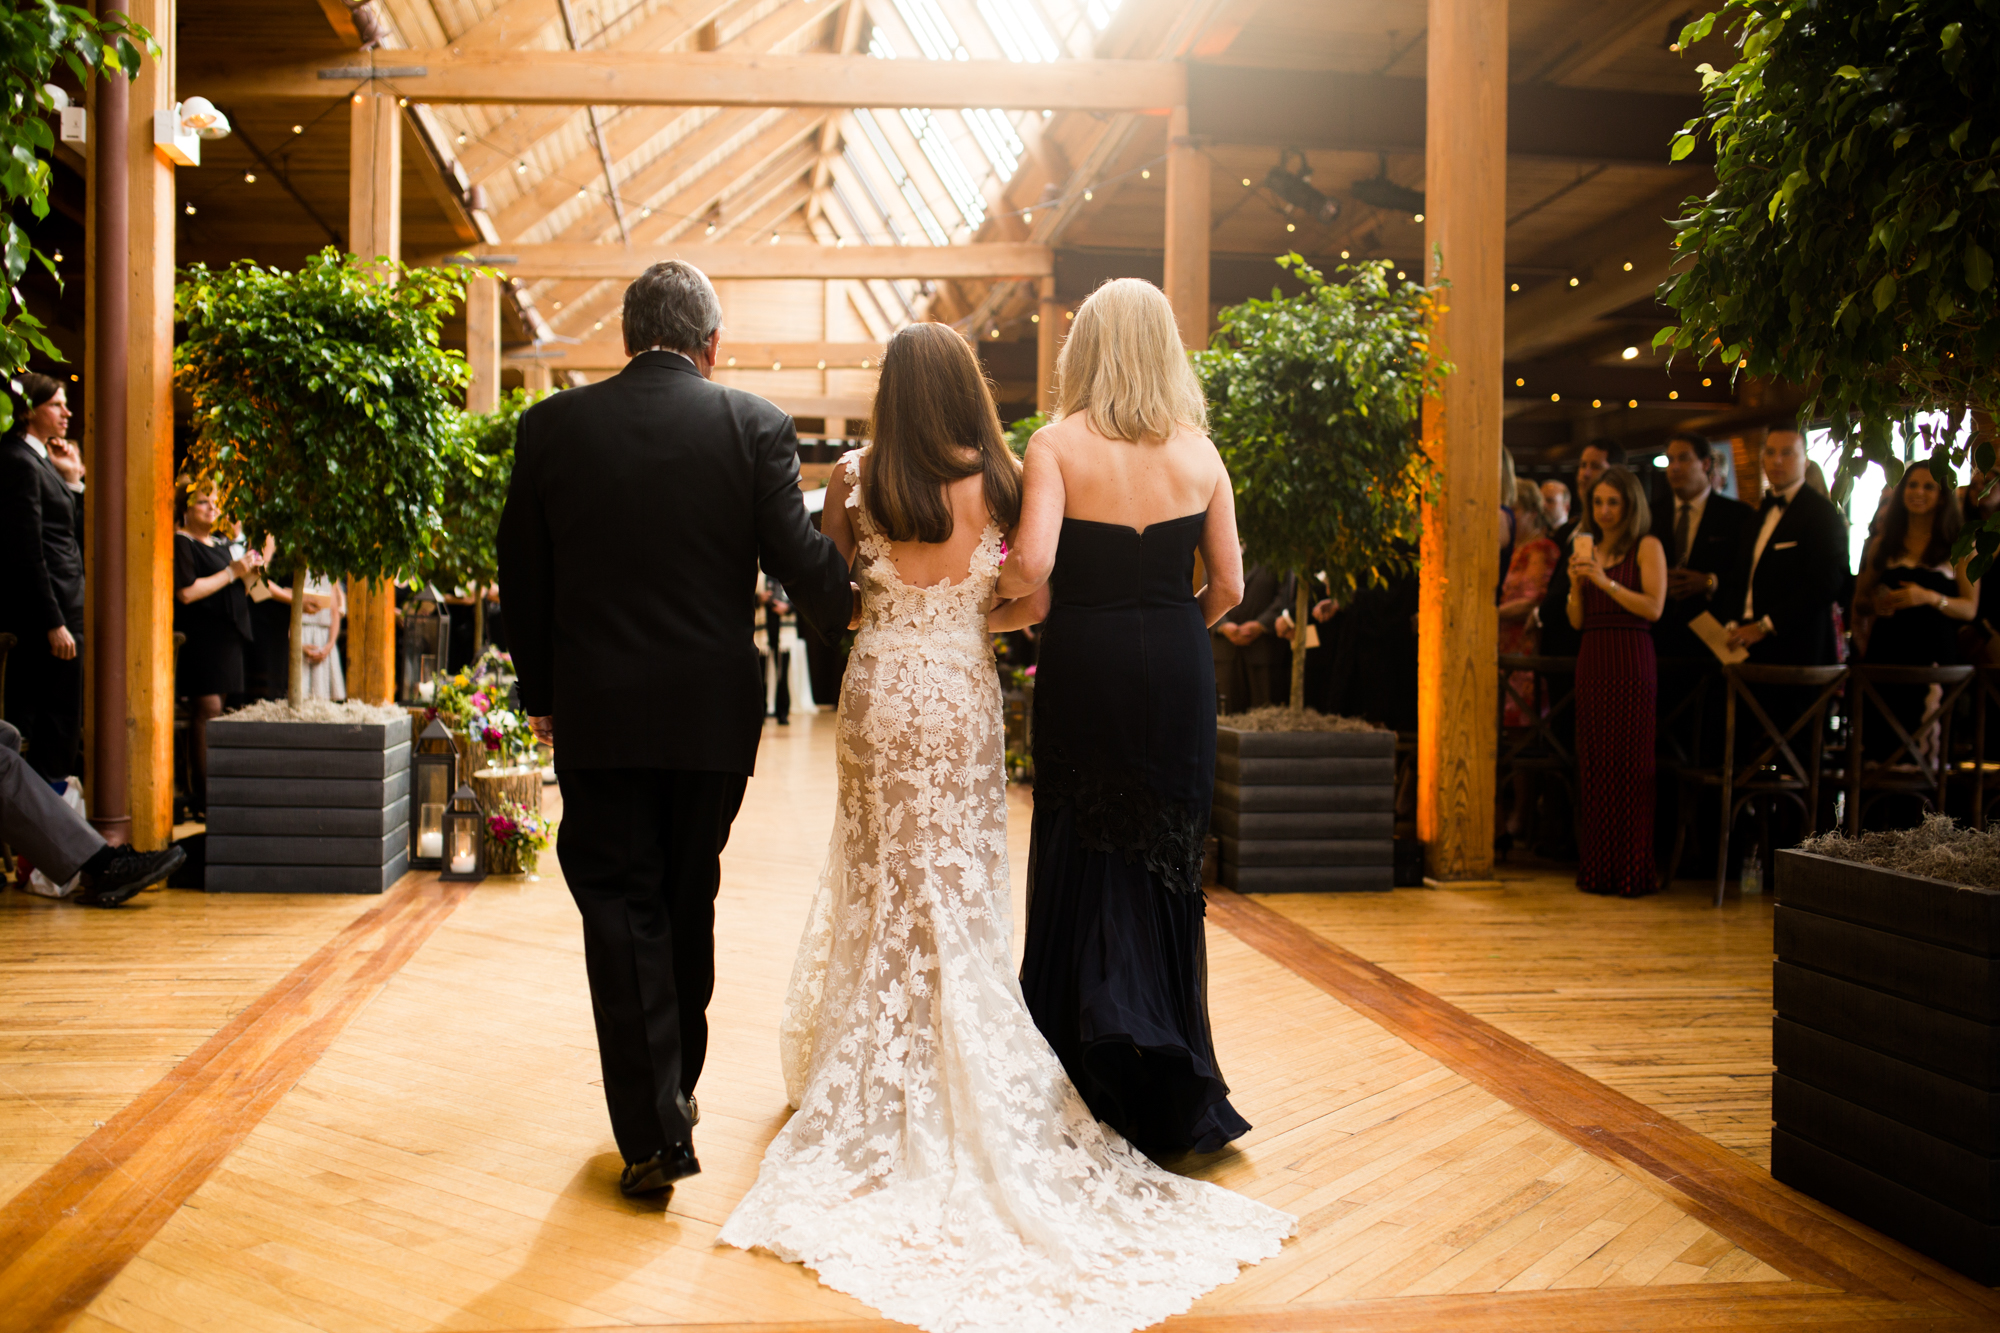 Bride walks down the aisle at wedding ceremony in Chicago at Bridgeport Art Center